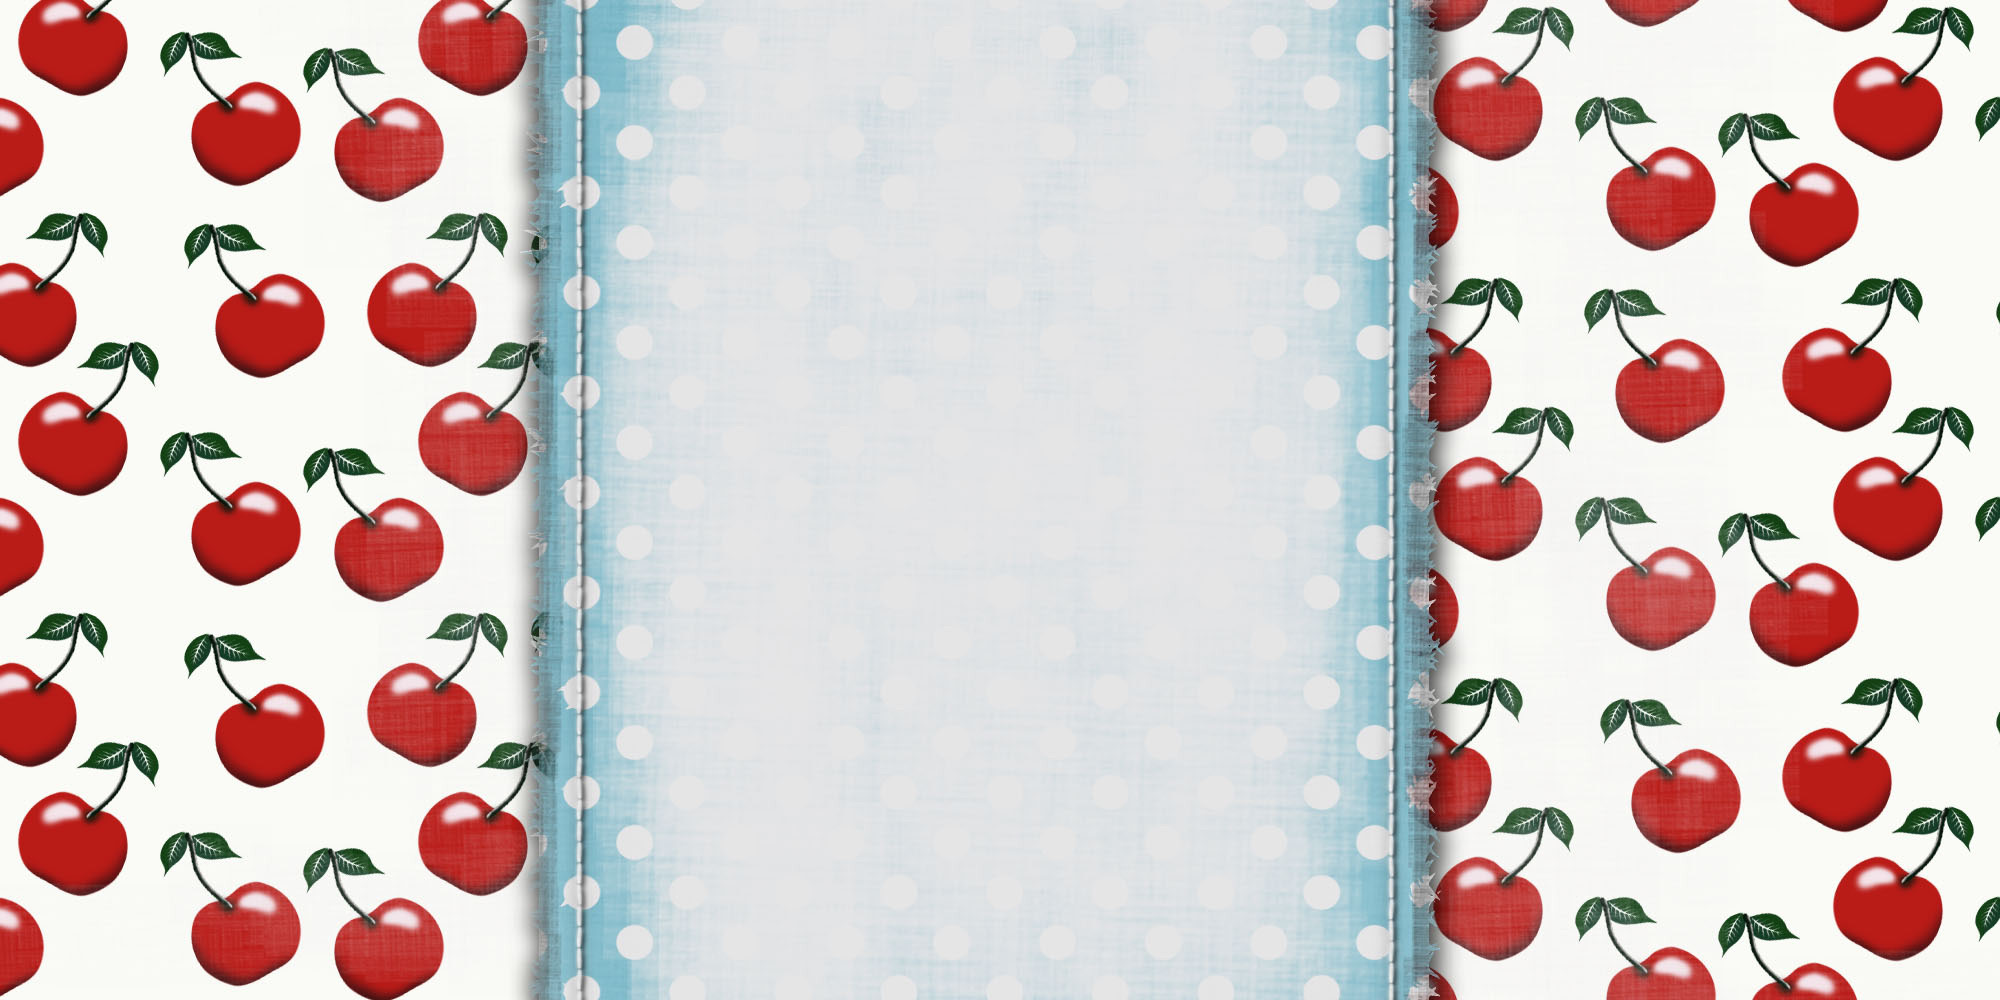 Cute Cherries Background Cherries Jubilee Background